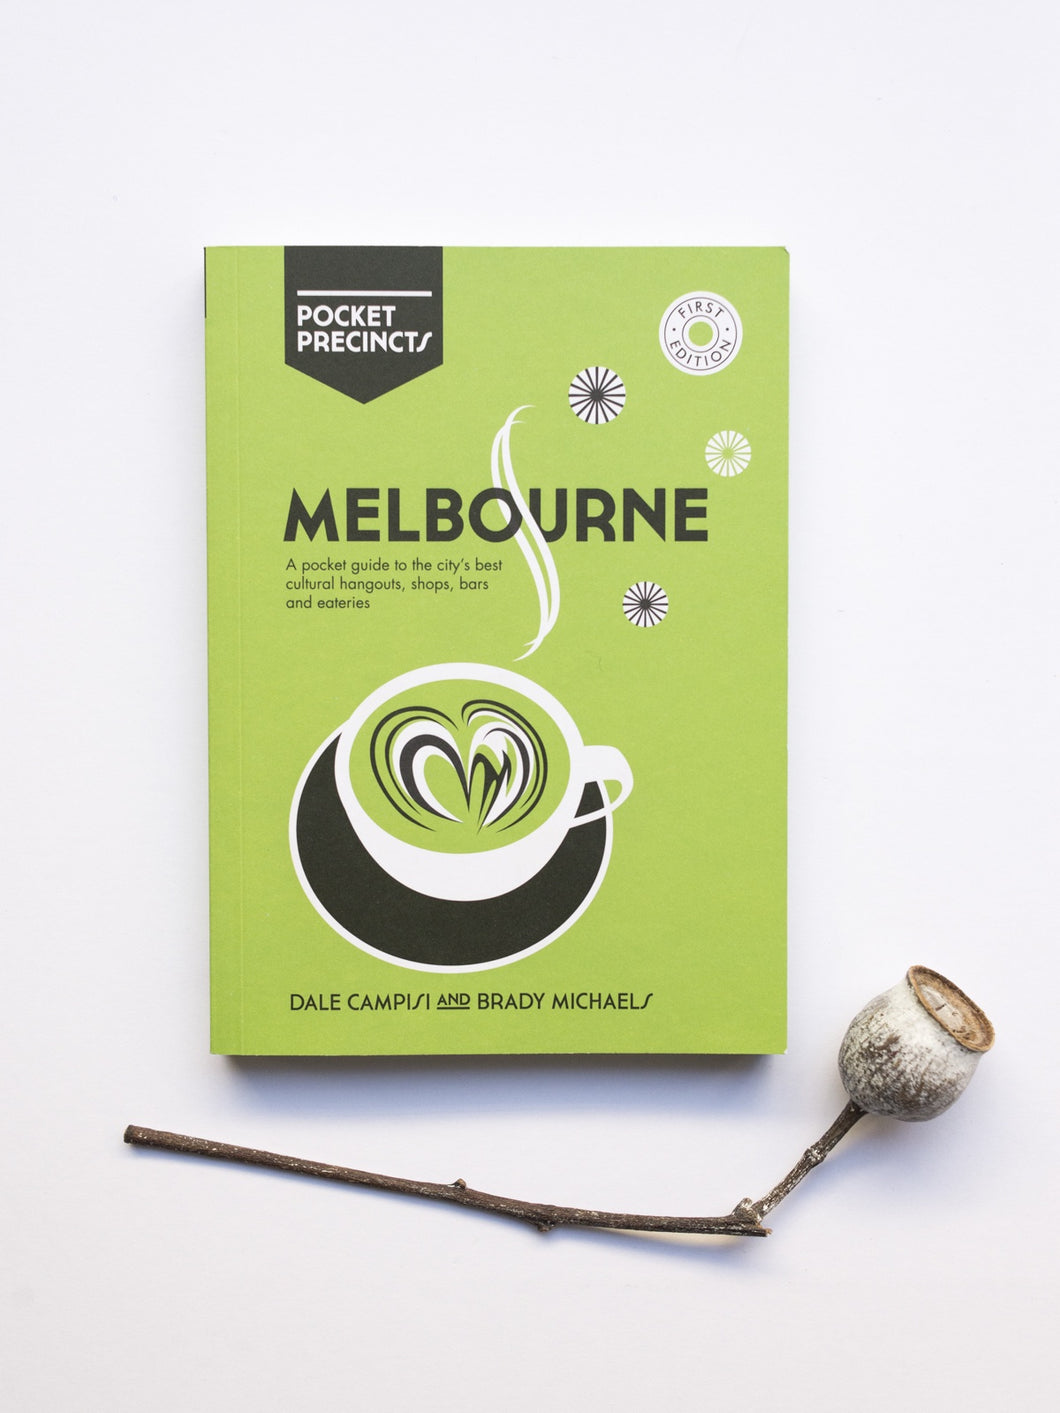 Melbourne Pocket Precincts by Dale Campisi and Brady Michaels